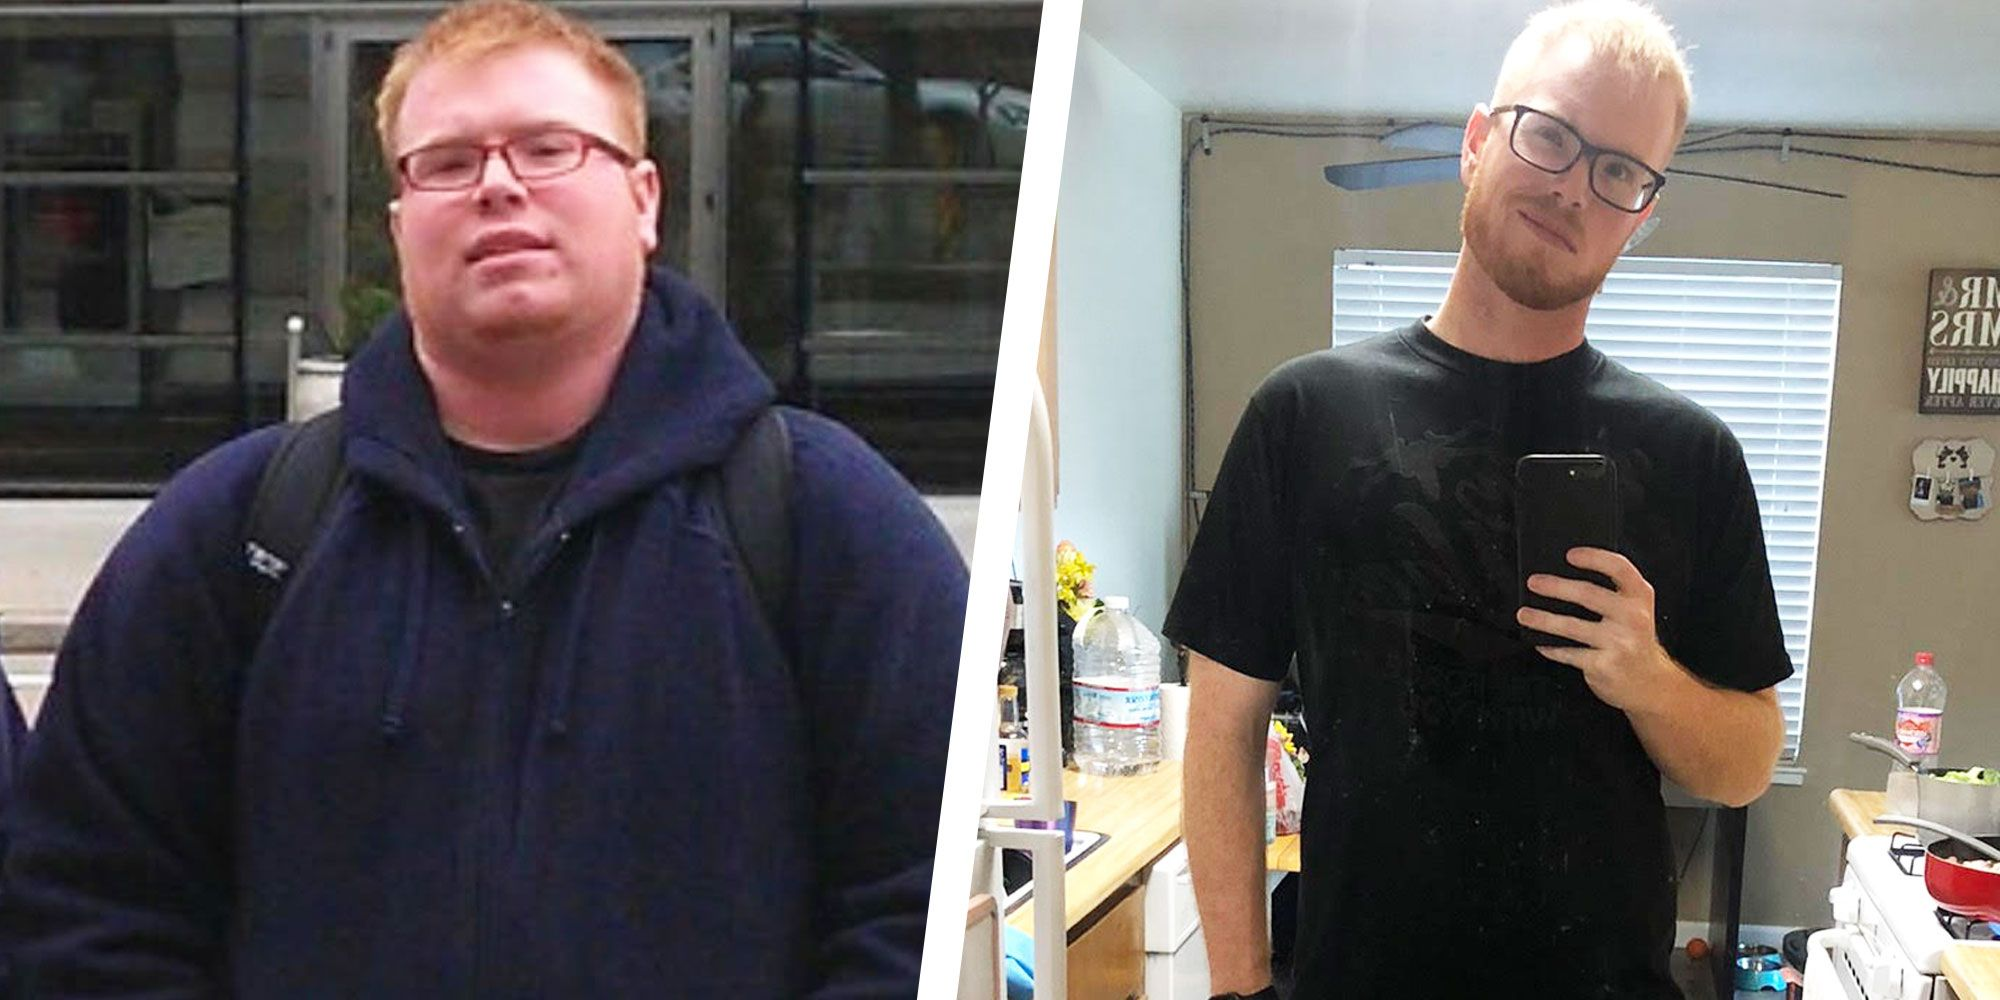 How the Keto Diet and Running Helped This Guy Lose More Than 130 Pounds